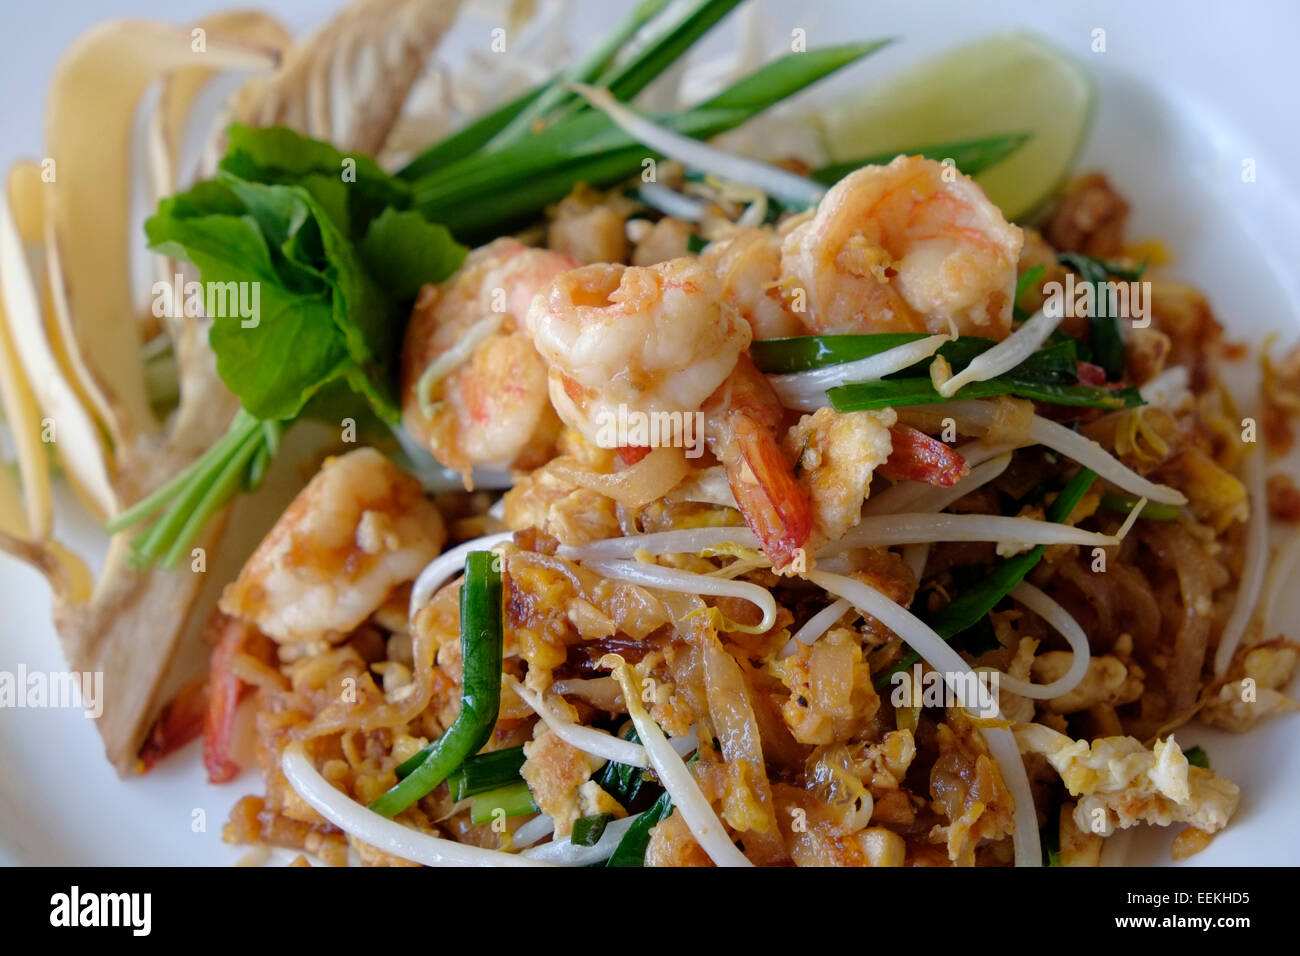 A Traditional Dish Of Pad Thai Stir Fried Rice Noodles With Prawns